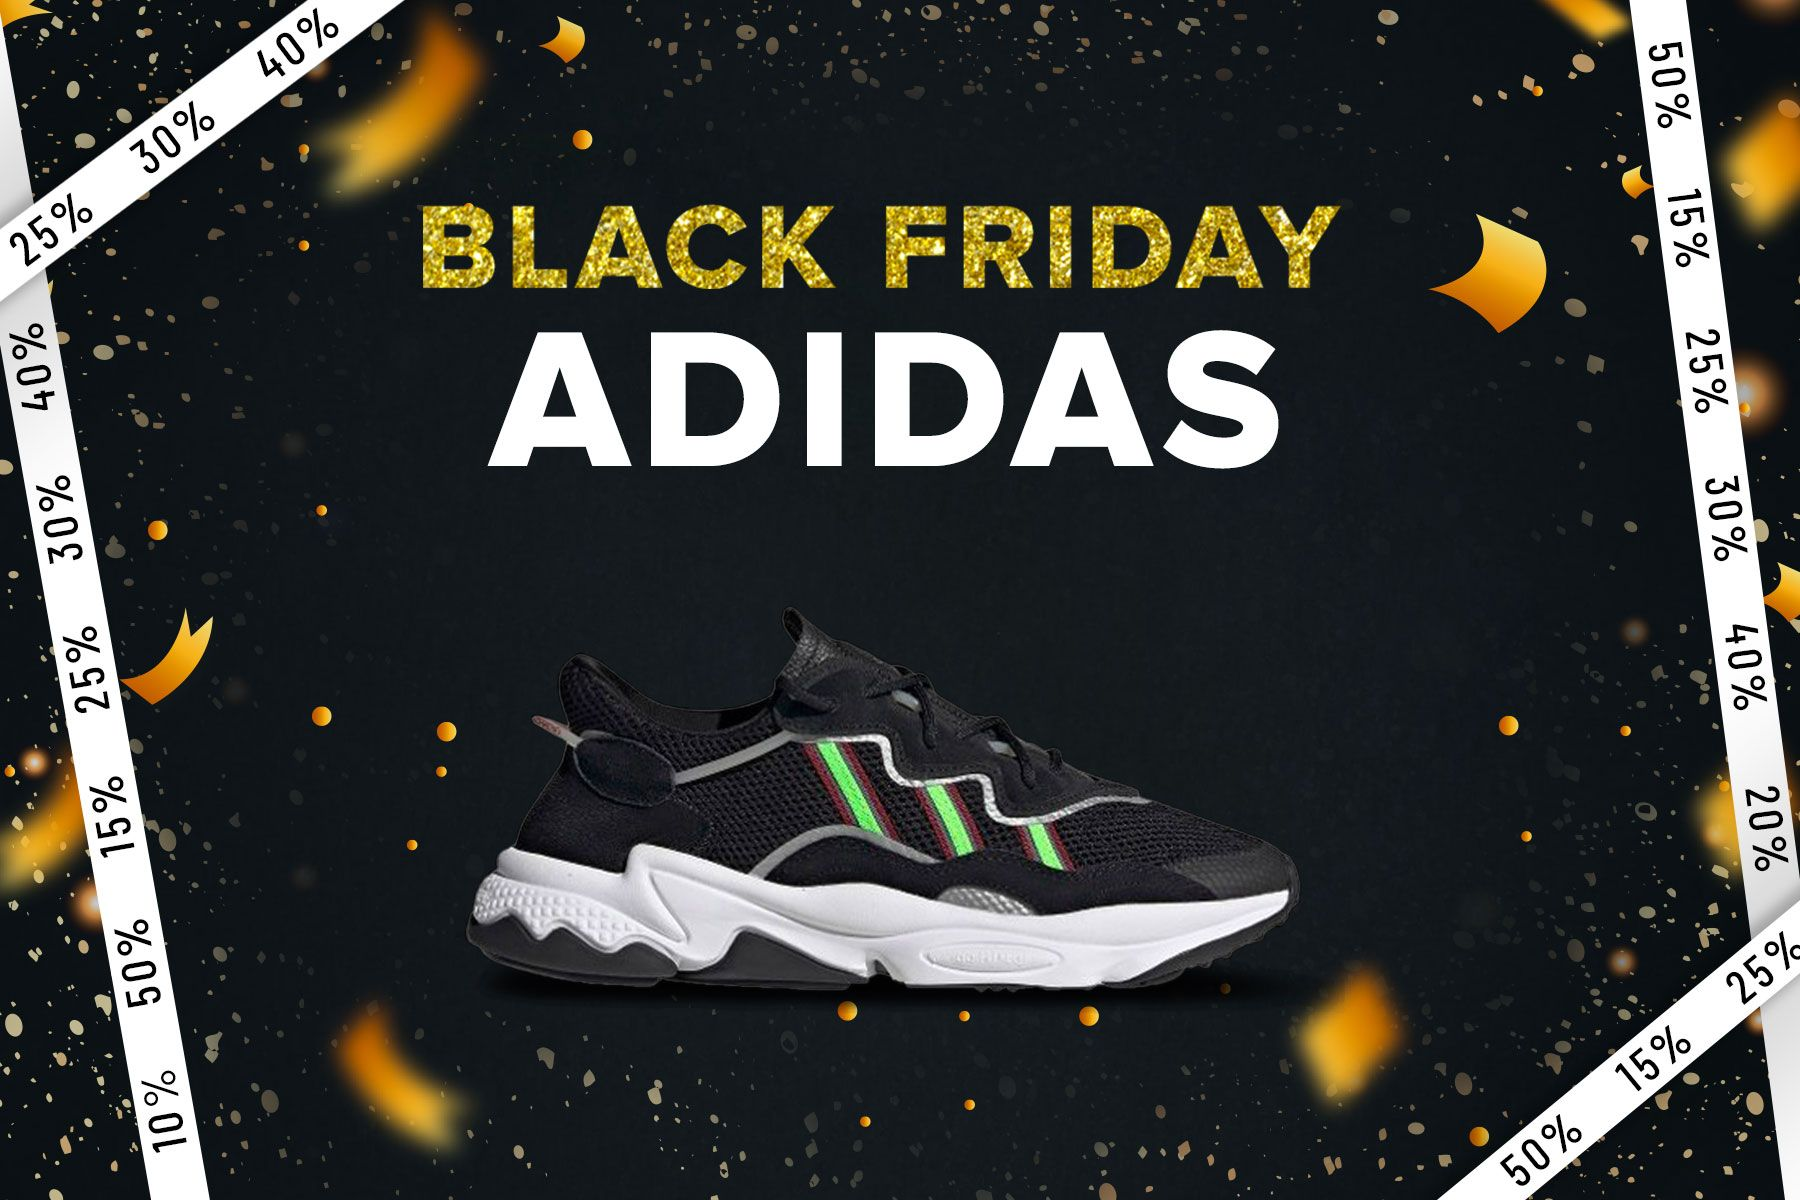 Adidas Black Friday 2020 Offer